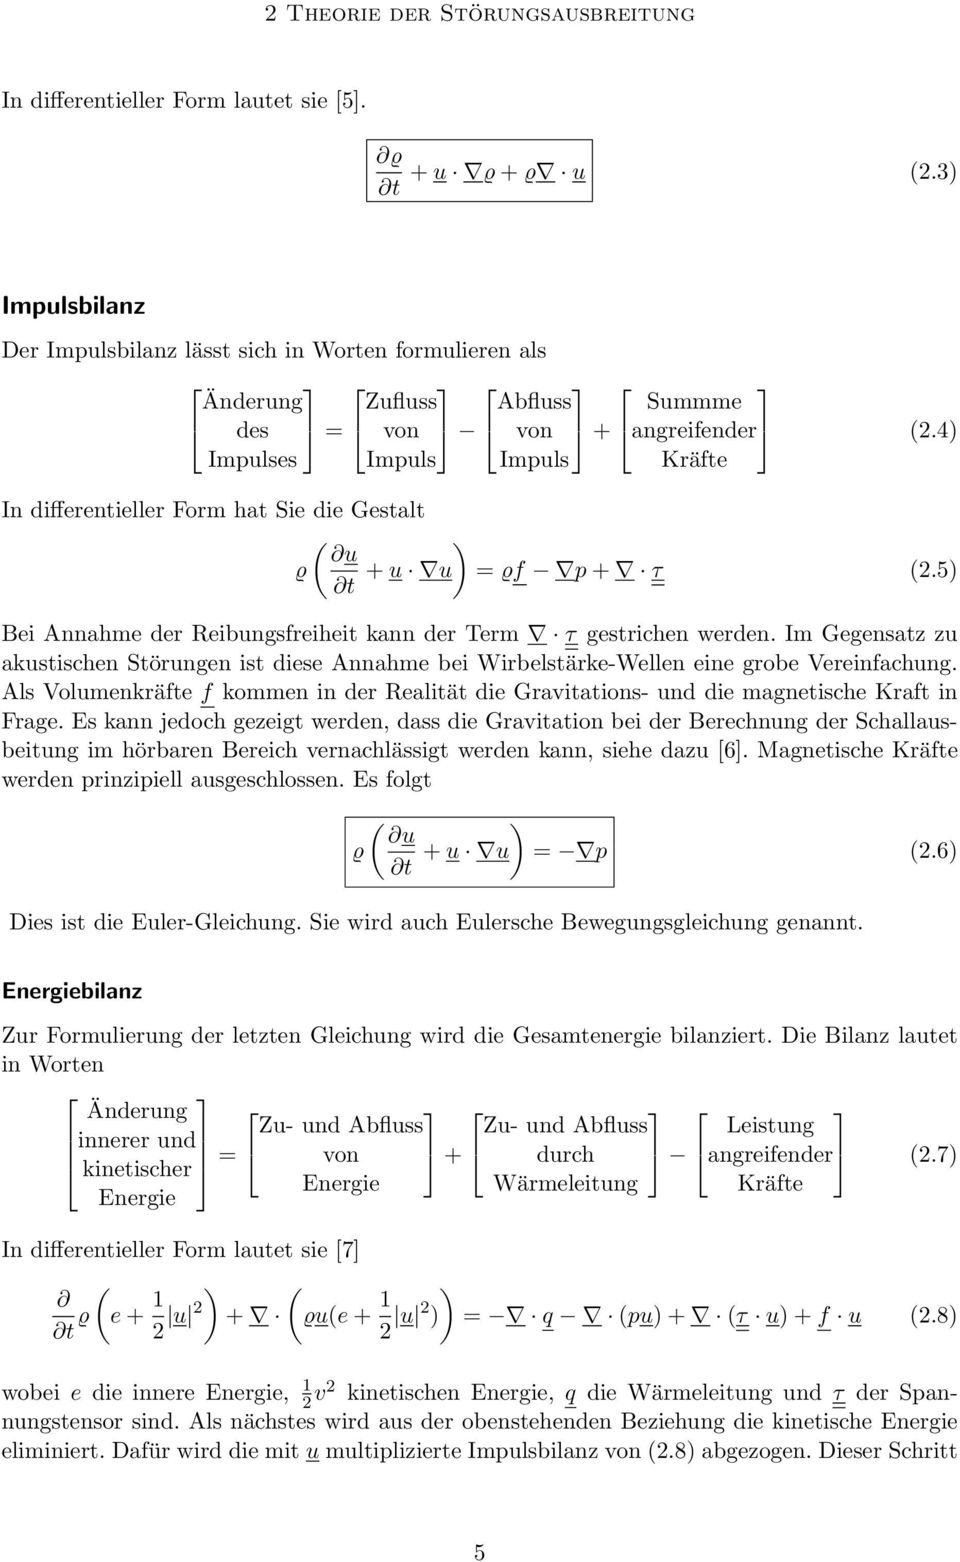 4) Impulses Impuls Impuls Kräfte In differentieller Form hat Sie die Gestalt ( ) u ϱ t + u u = ϱf p + τ (2.5) Bei Annahme der Reibungsfreiheit kann der Term τ gestrichen werden.